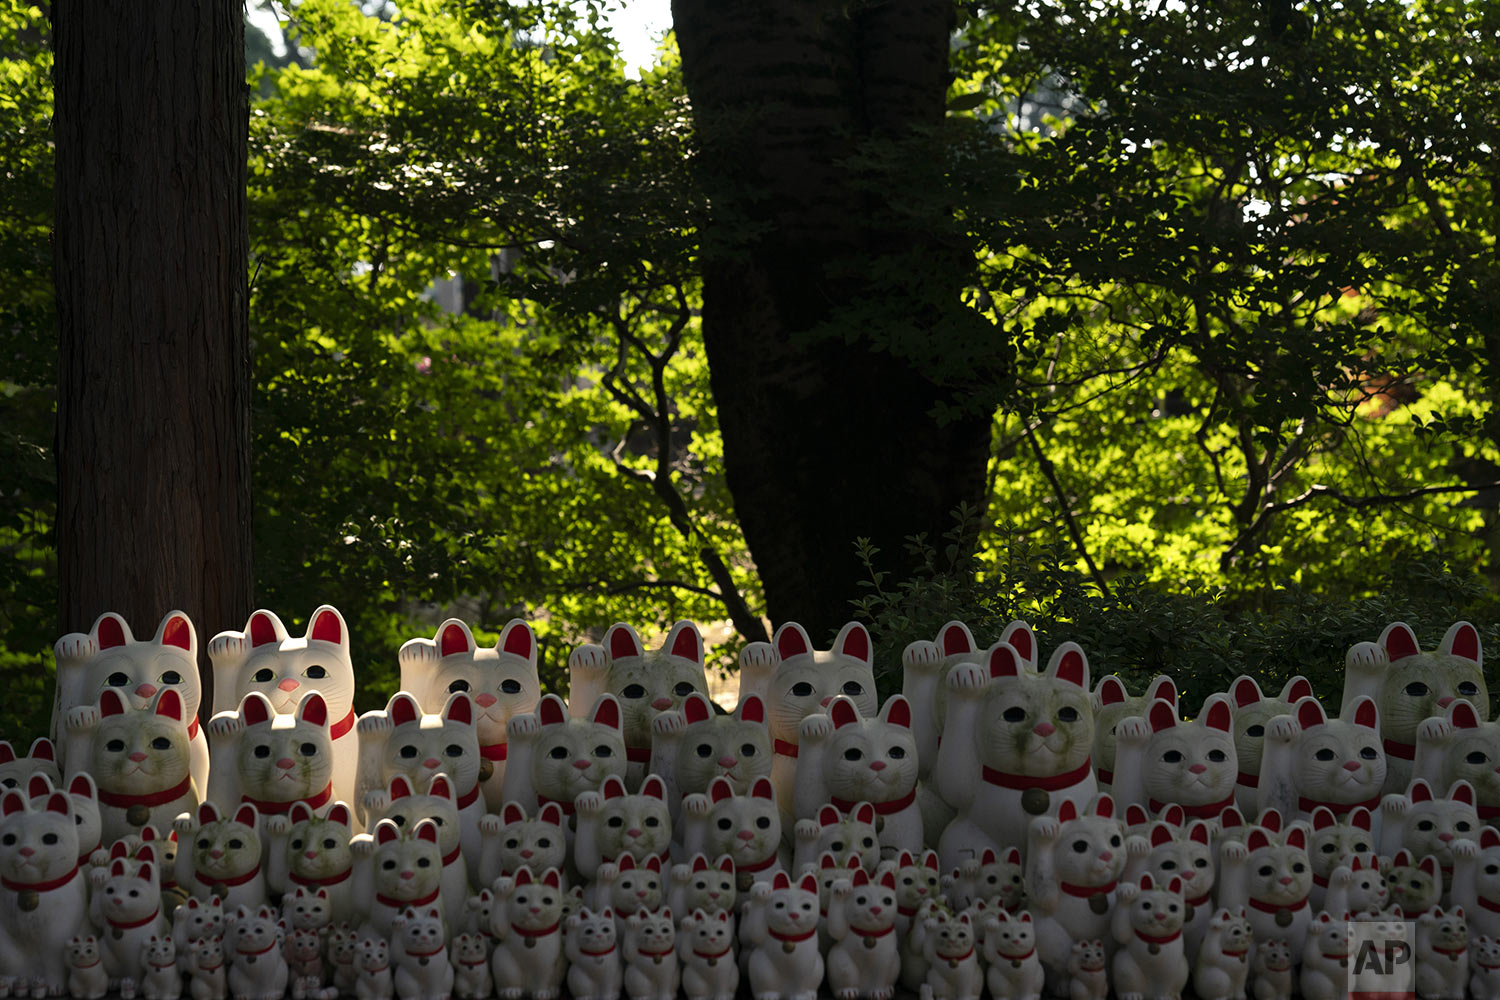 Beckoning cat figurines are on display at Gotokuji Temple in Tokyo, Tuesday, June 25, 2019. (AP Photo/Jae C. Hong)